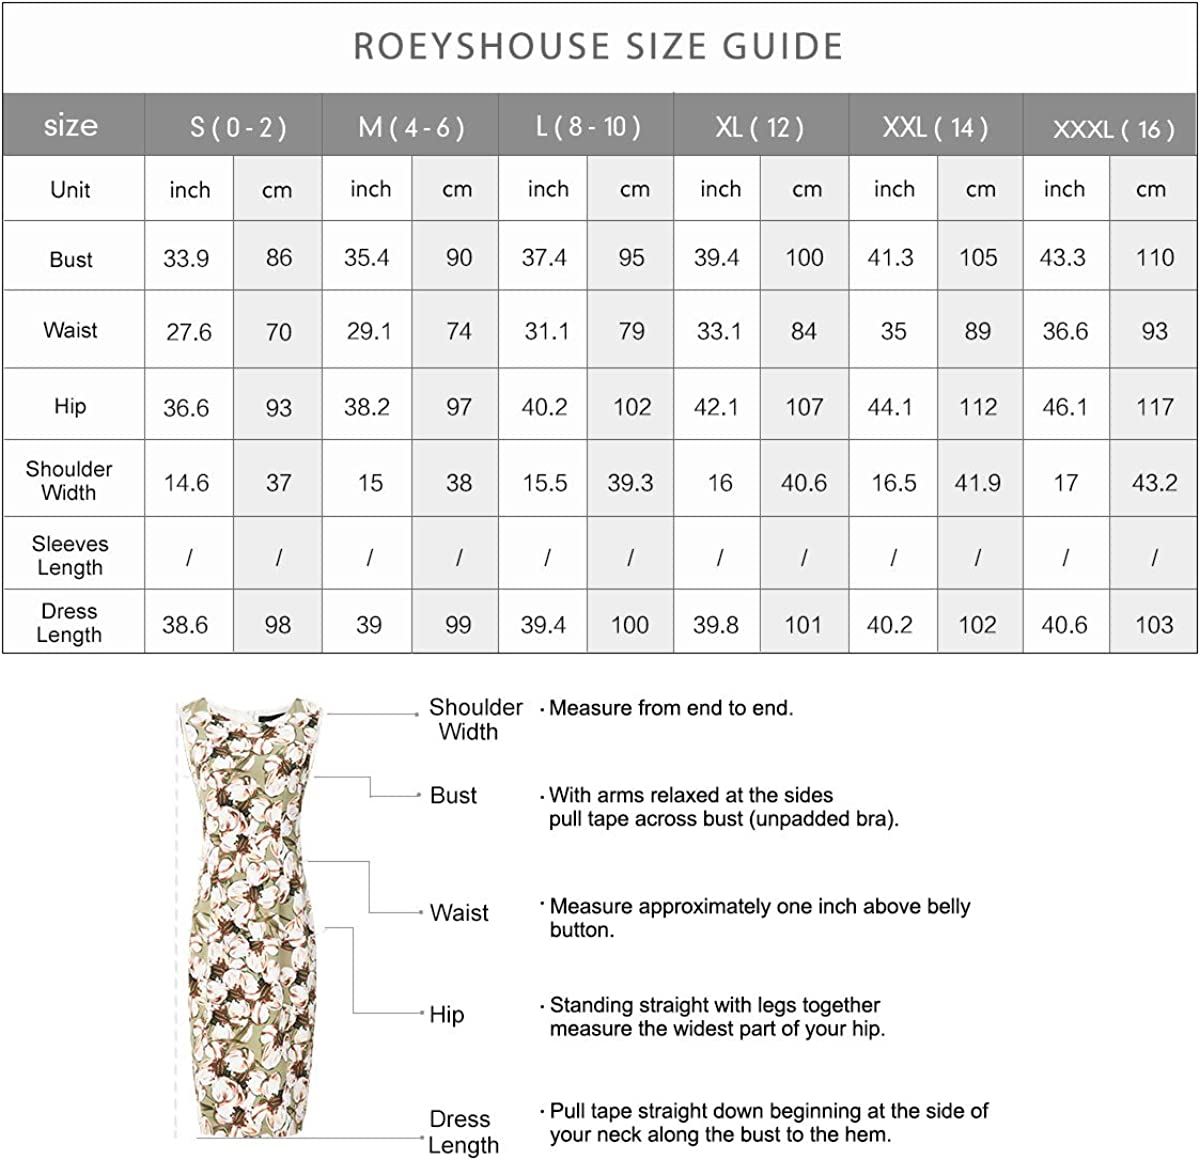 Roey s house Womens Sleeveless Floral Print Sheath Dress Knee Length Work Office Fitted Beige Dress